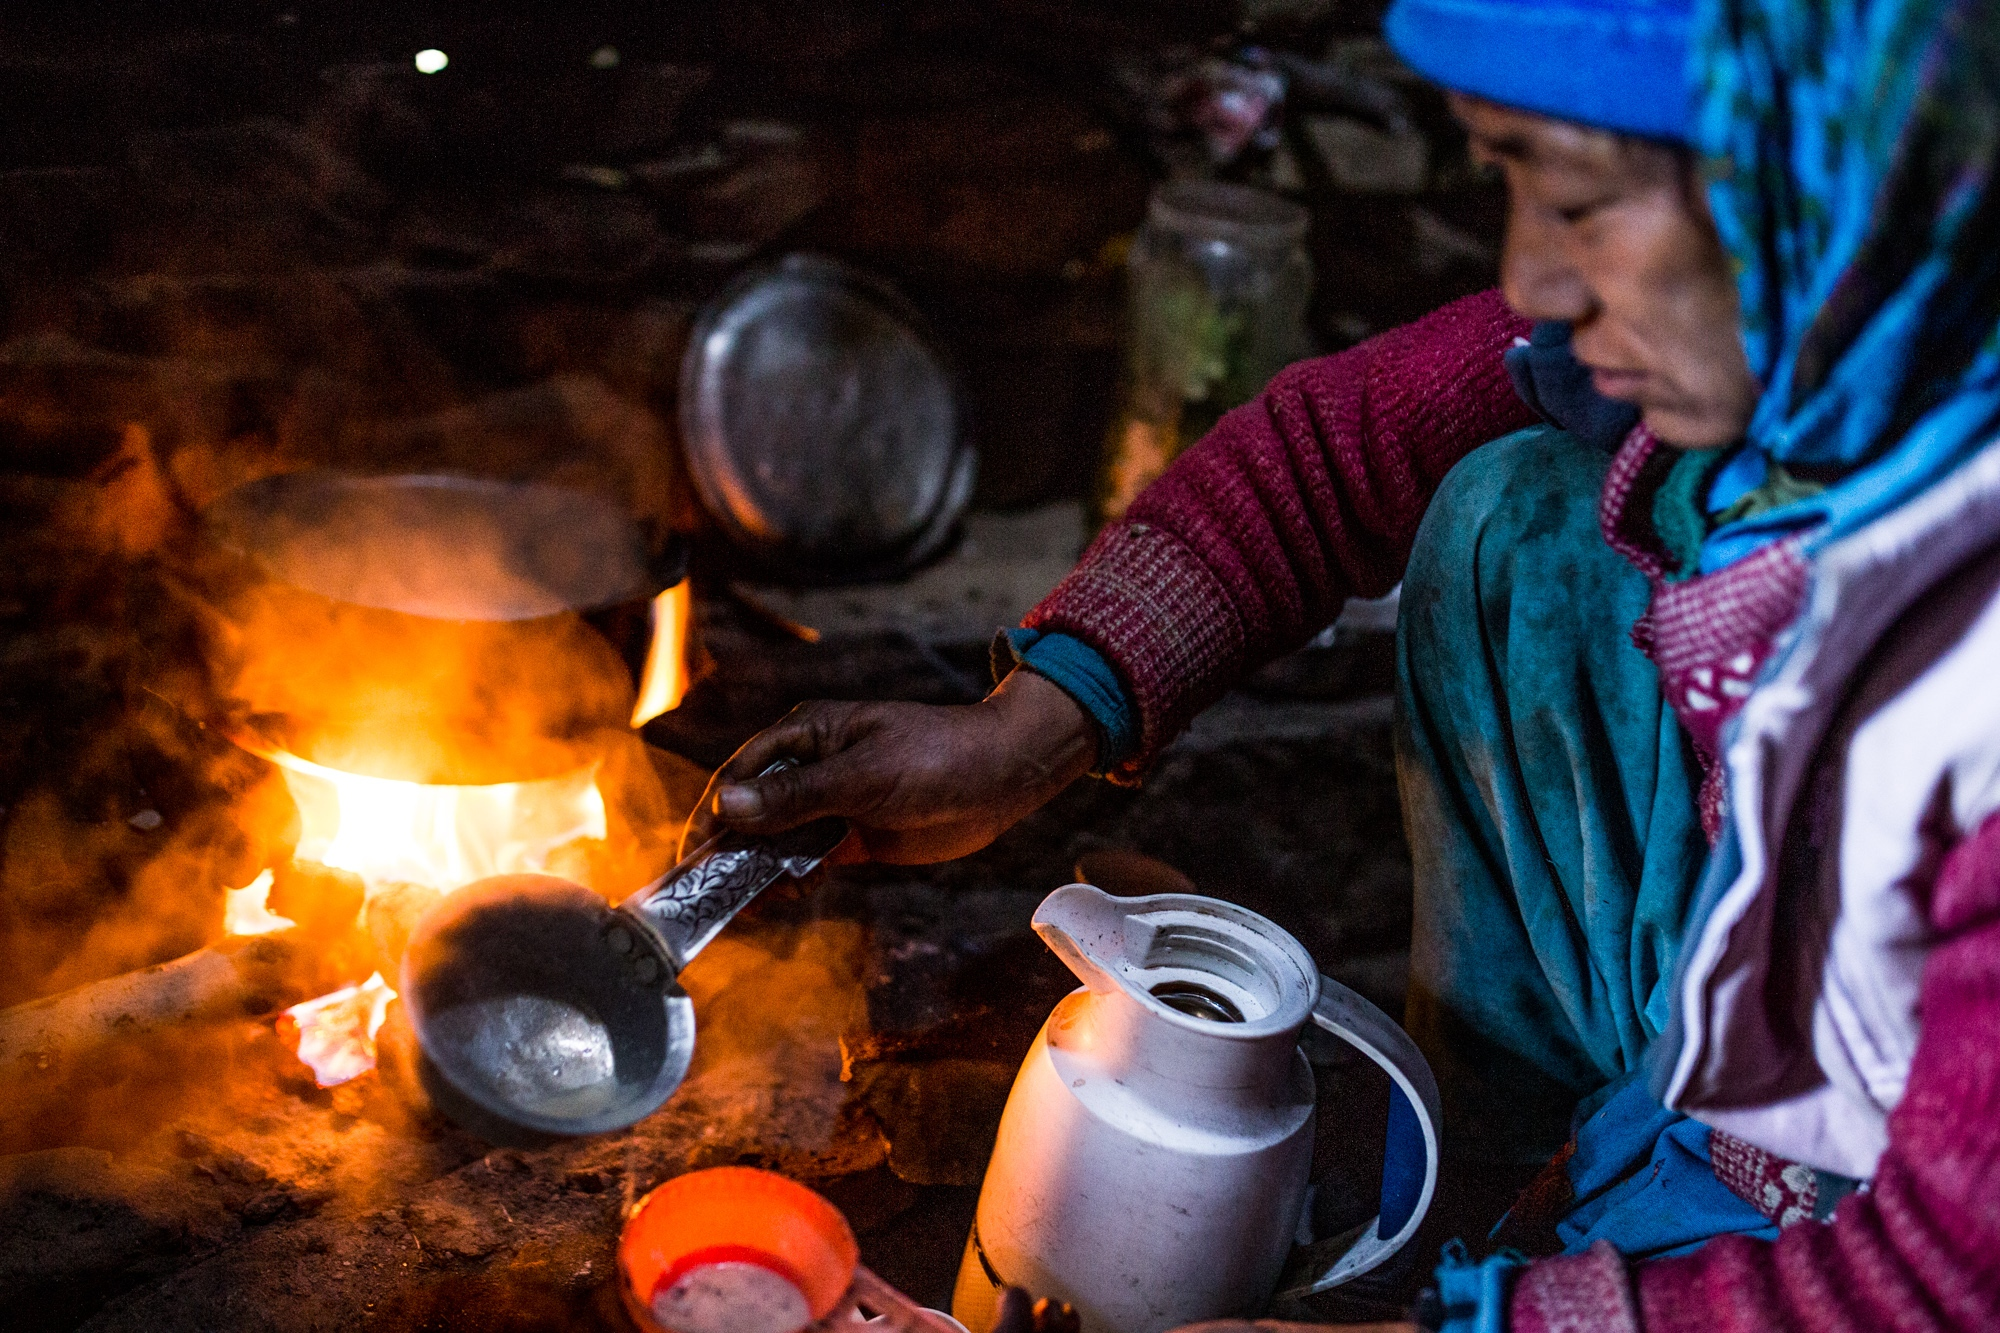 A dung-fuelled fire used to boil water to prepare chai in a smoke-filled kitchen. India.